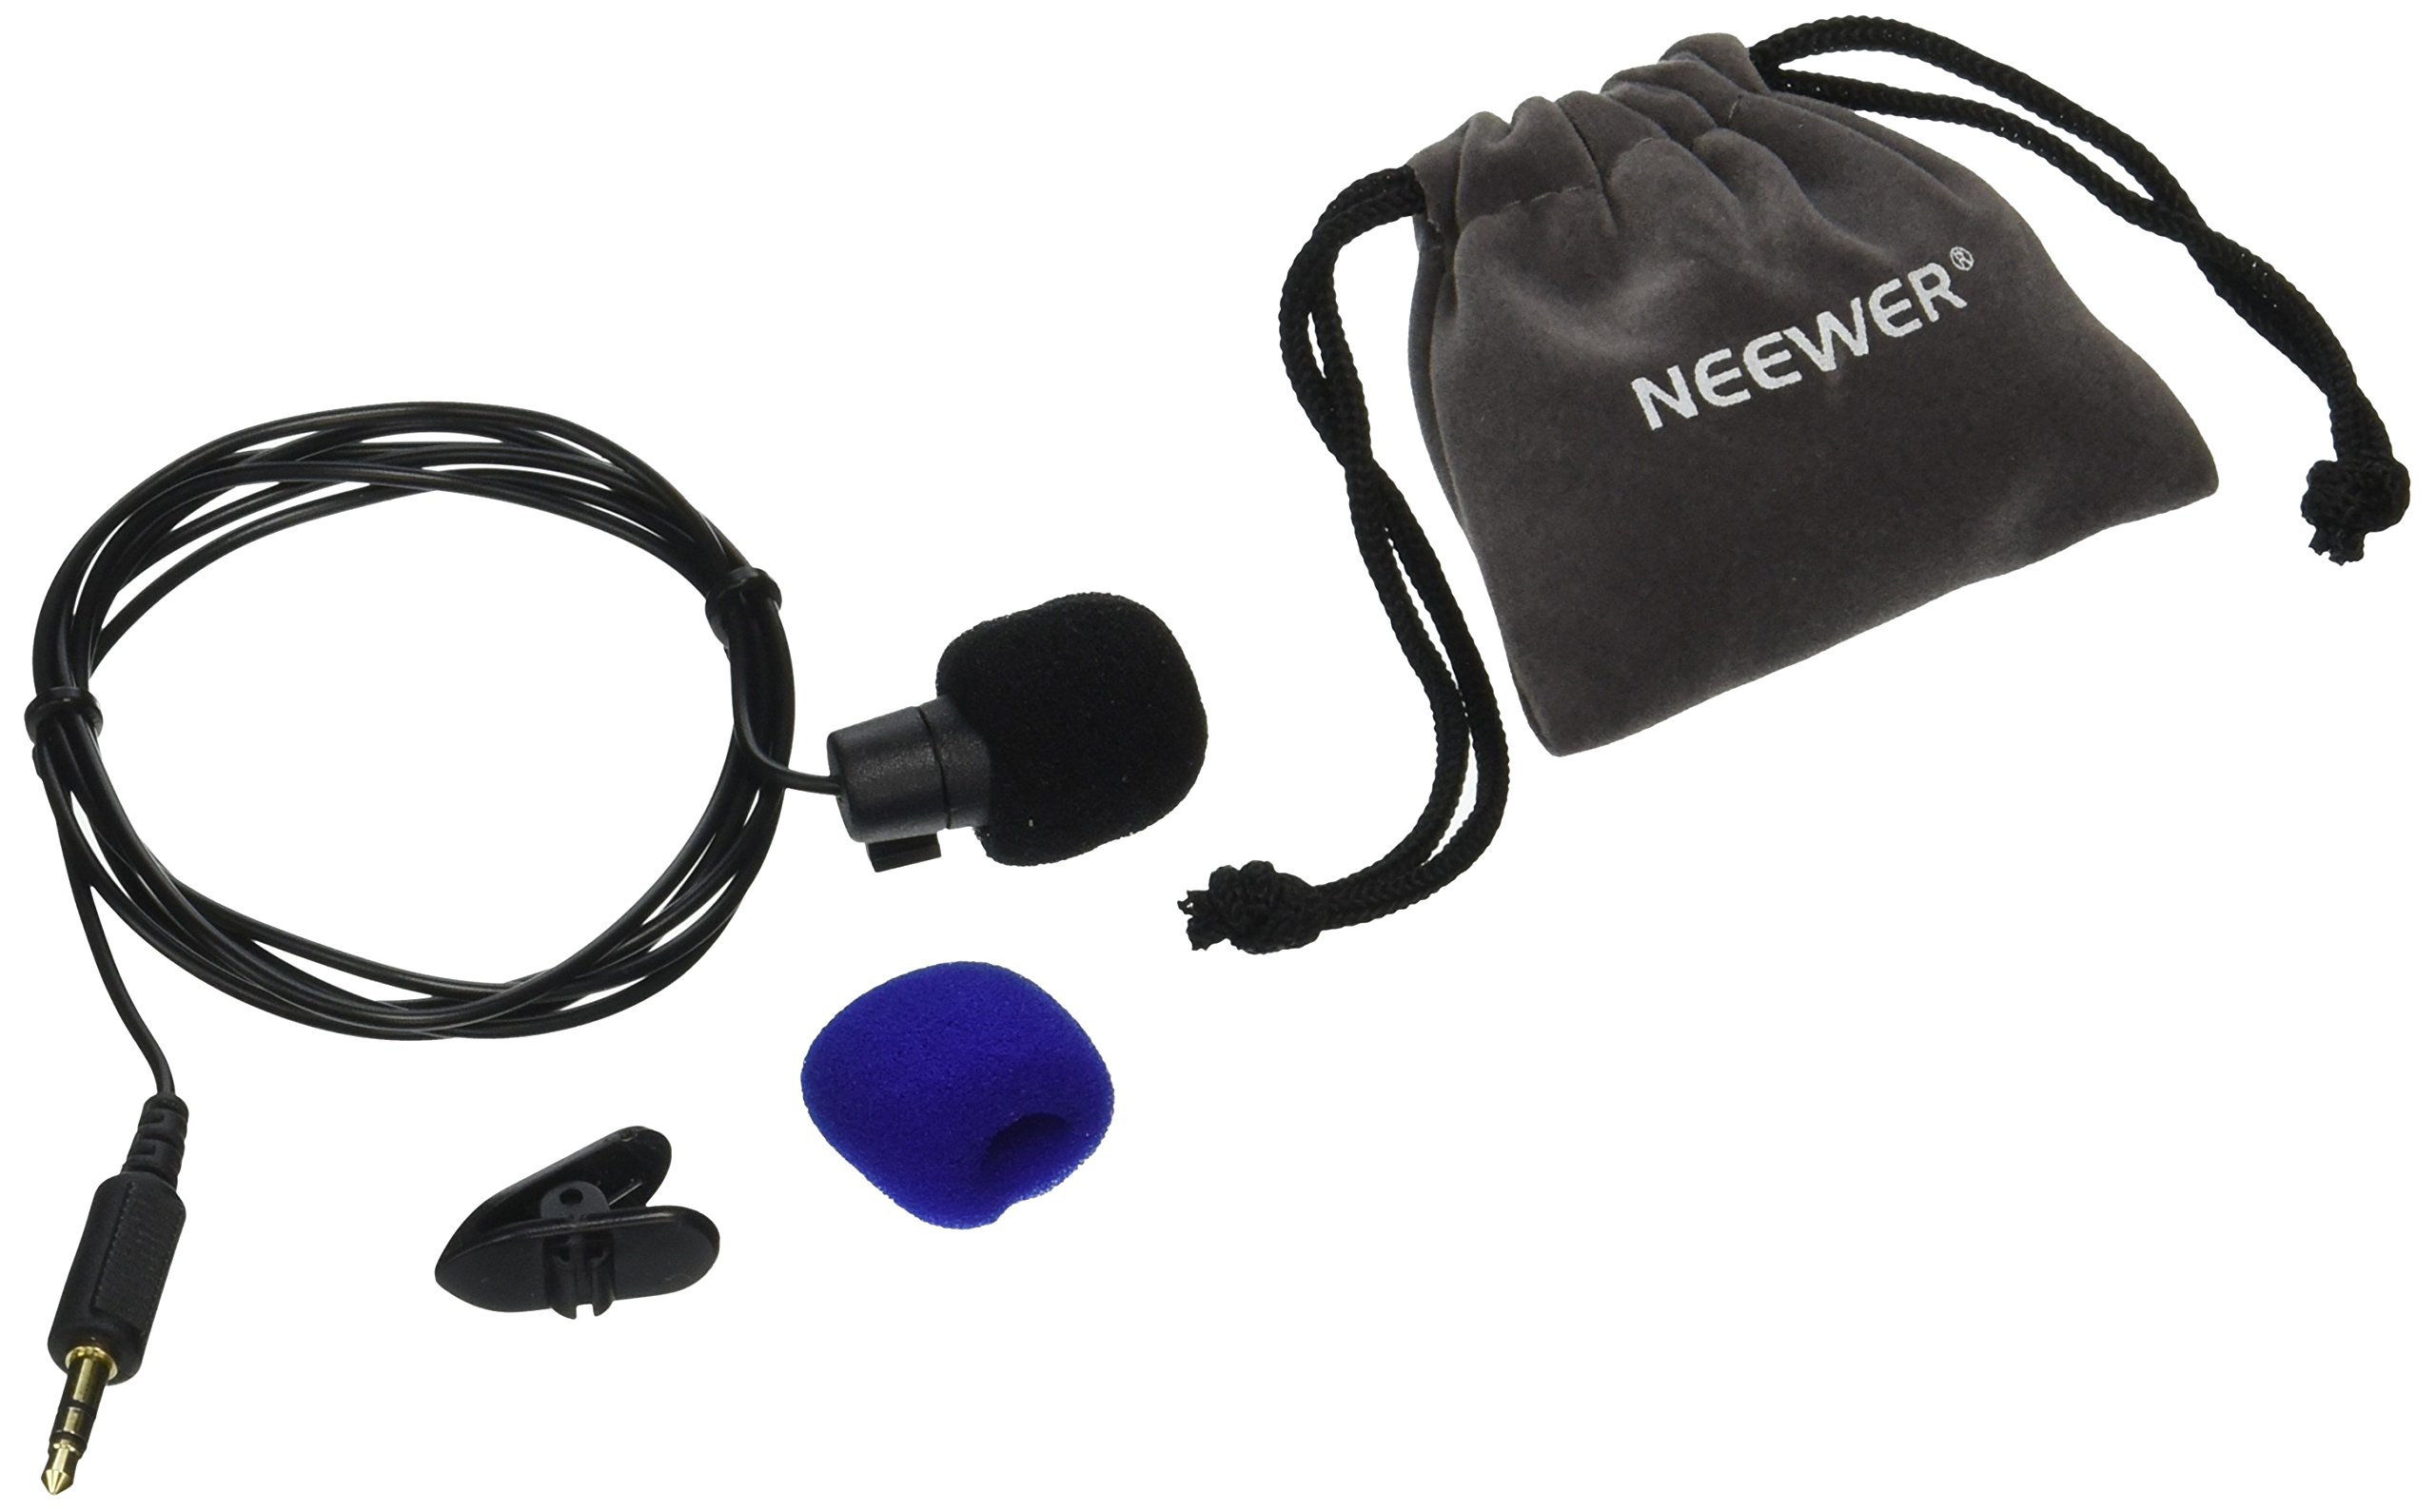 Neewer NW-802 3.5mm Deluxe Clip-on Lavalier Lapel Omnidirectional Microphone for iPhone 6S plus/6S/6 plus/6/5/5S,iPad 4/3/2,ipod Touch,Samsung Galaxy,Tablets,Laptop,PC,Camera and Youtube Video